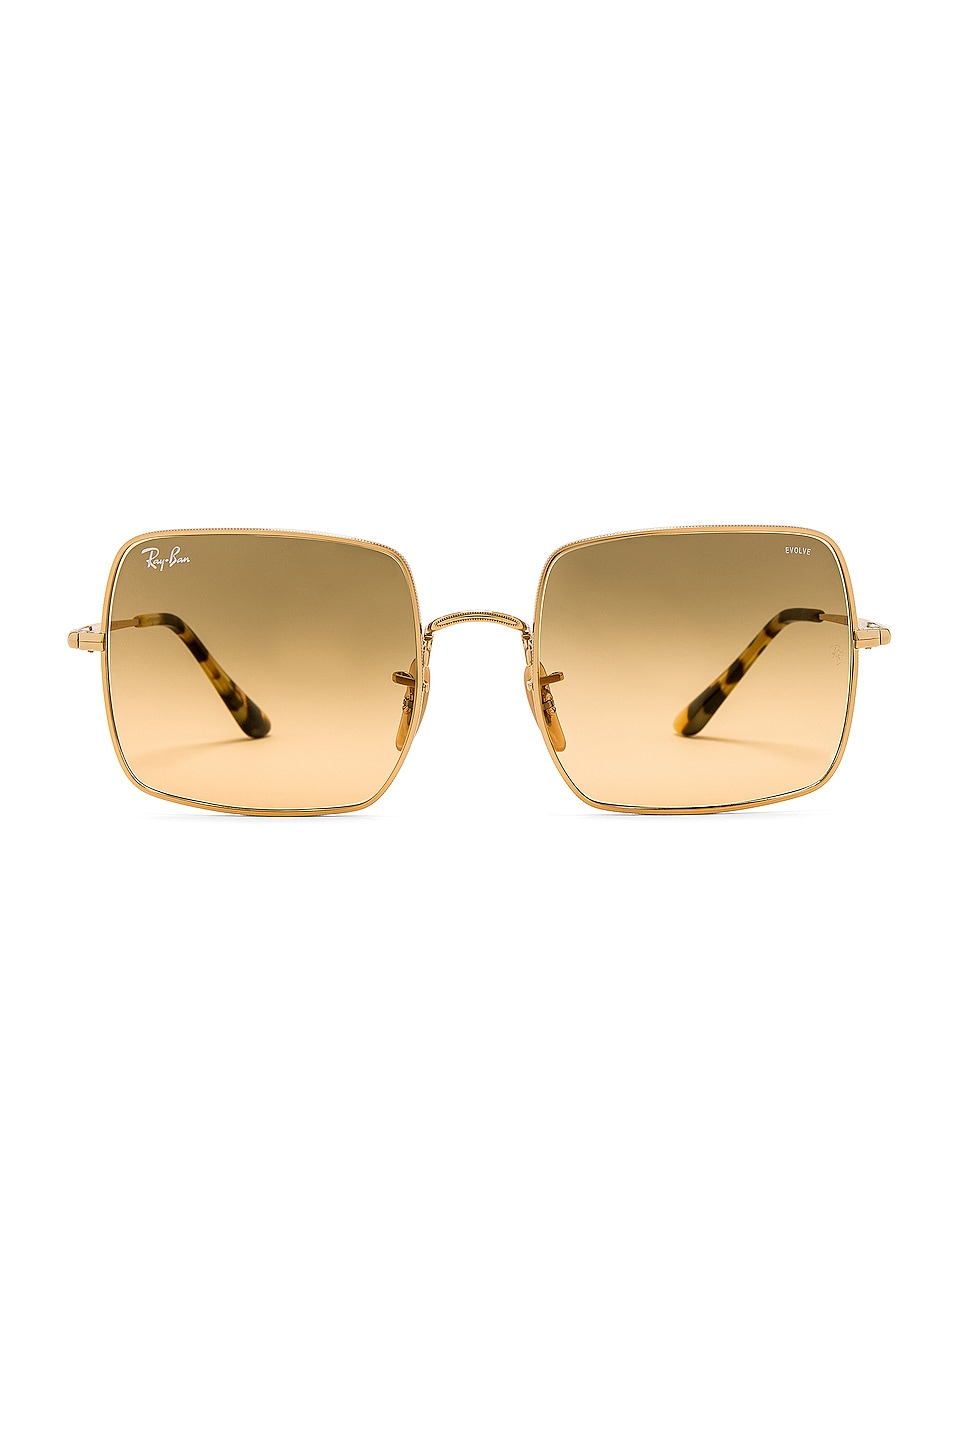 Ray-Ban Square Evolve in Gold & Gray Gradient Orange